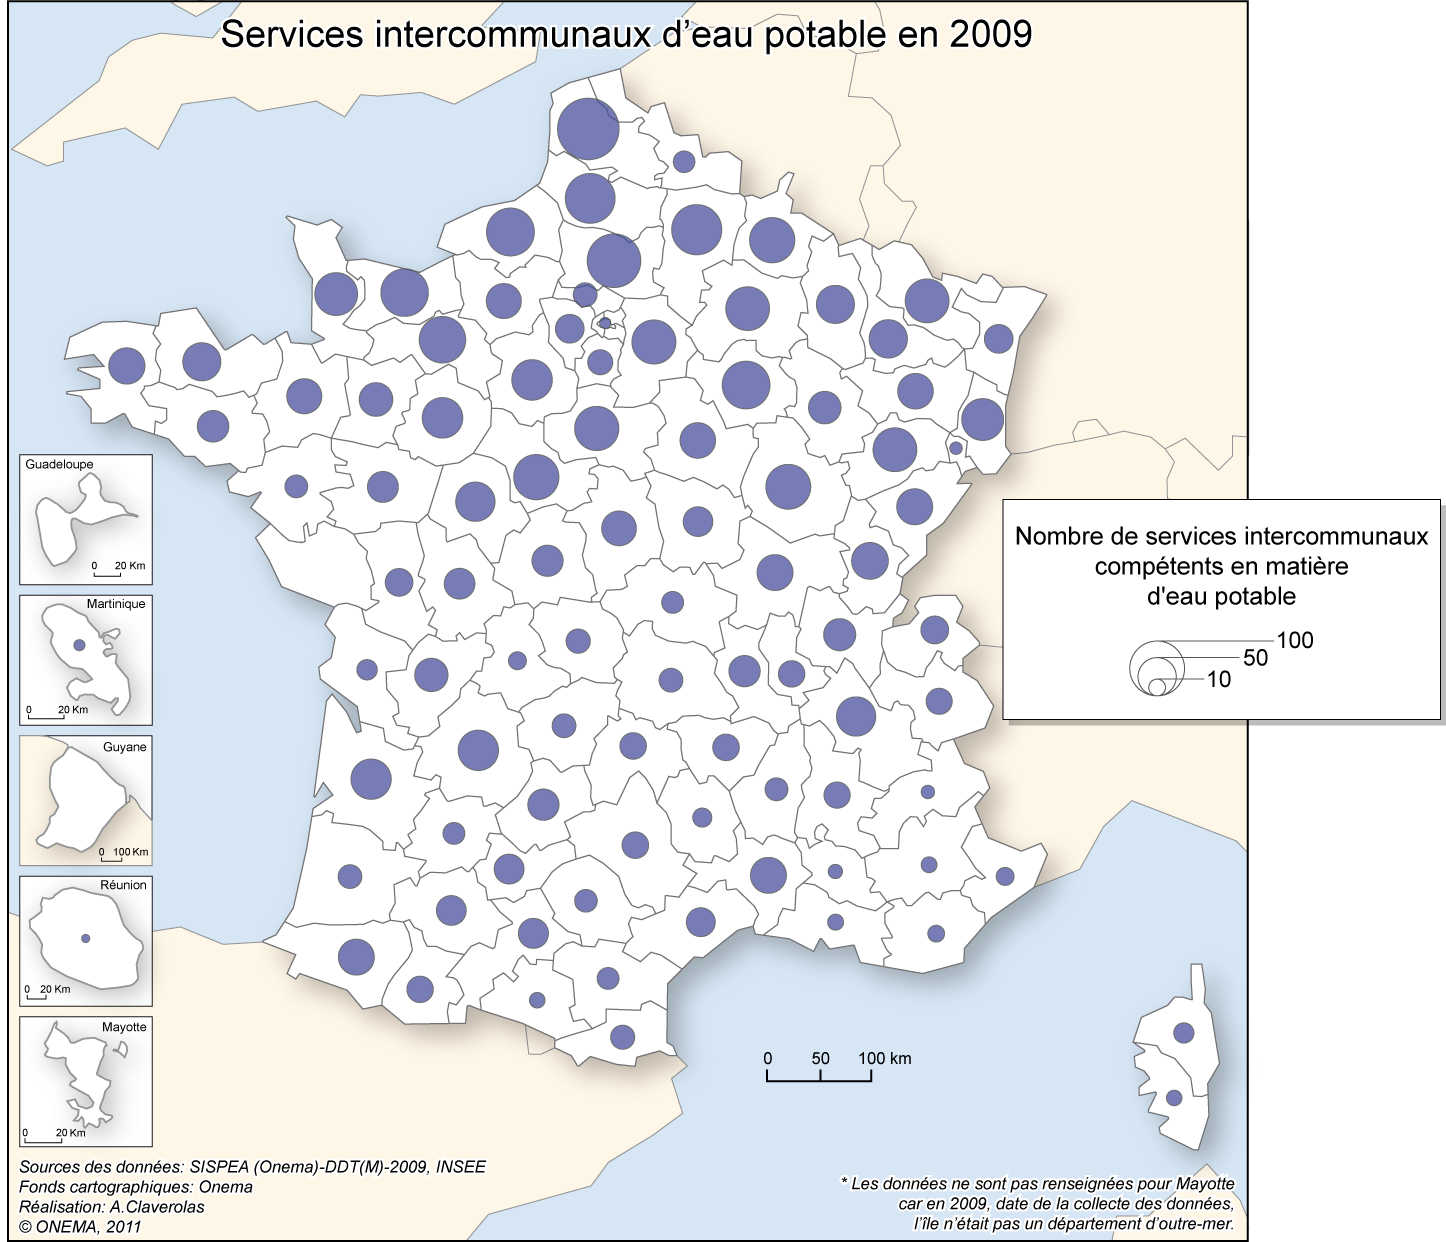 6)	Services intercommunaux d'eau potable en 2009